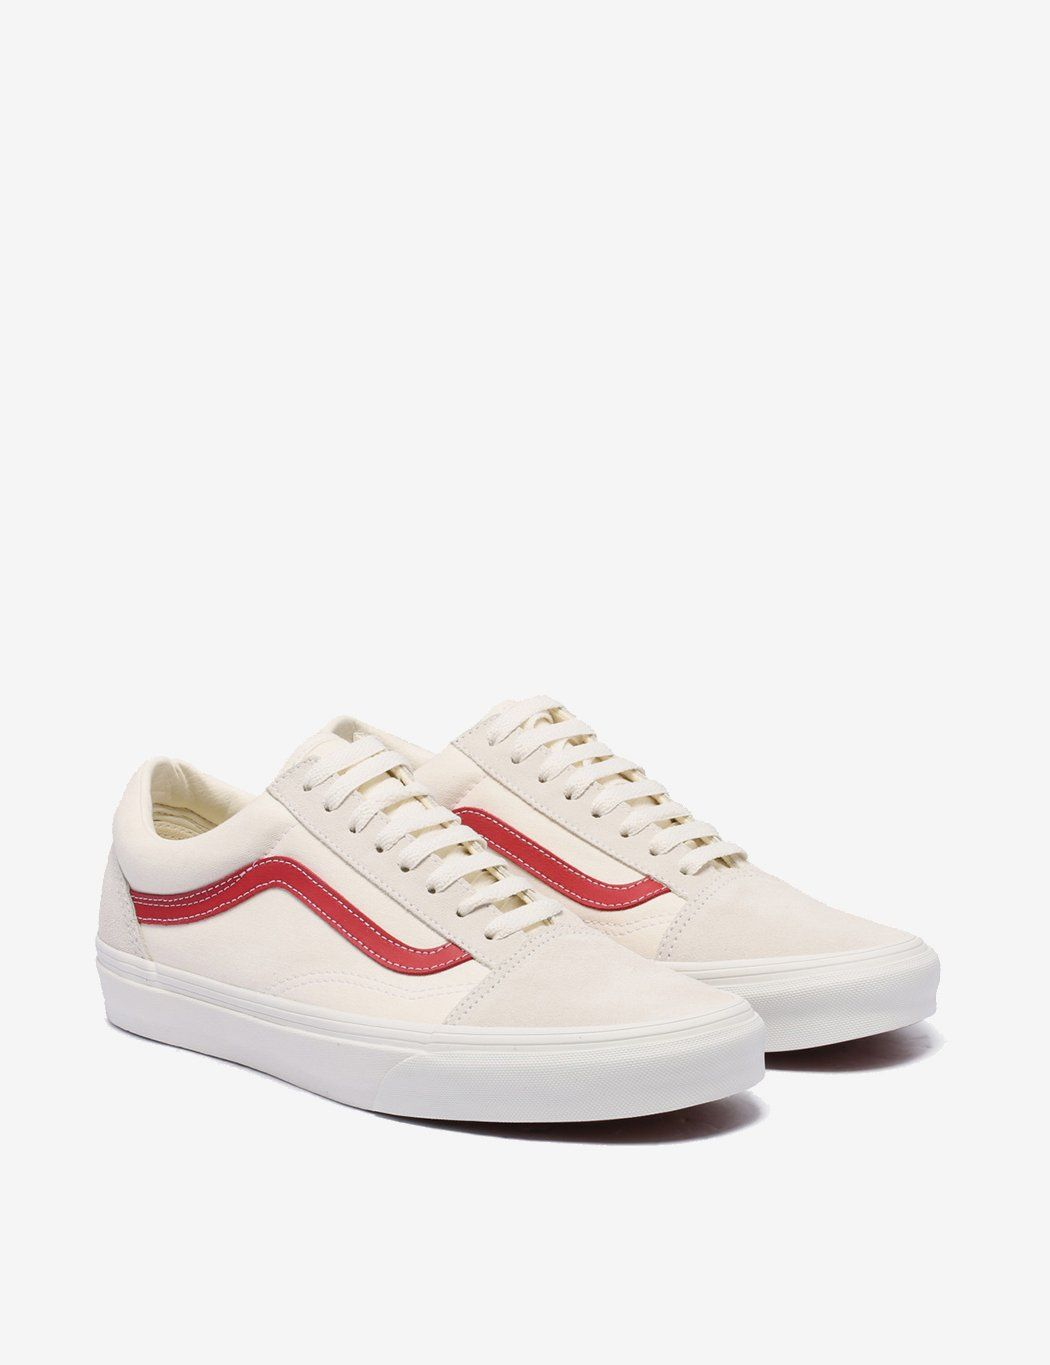 ab923a974a27 Vans Old Skool (Suede) - Vintage White Rococco Red